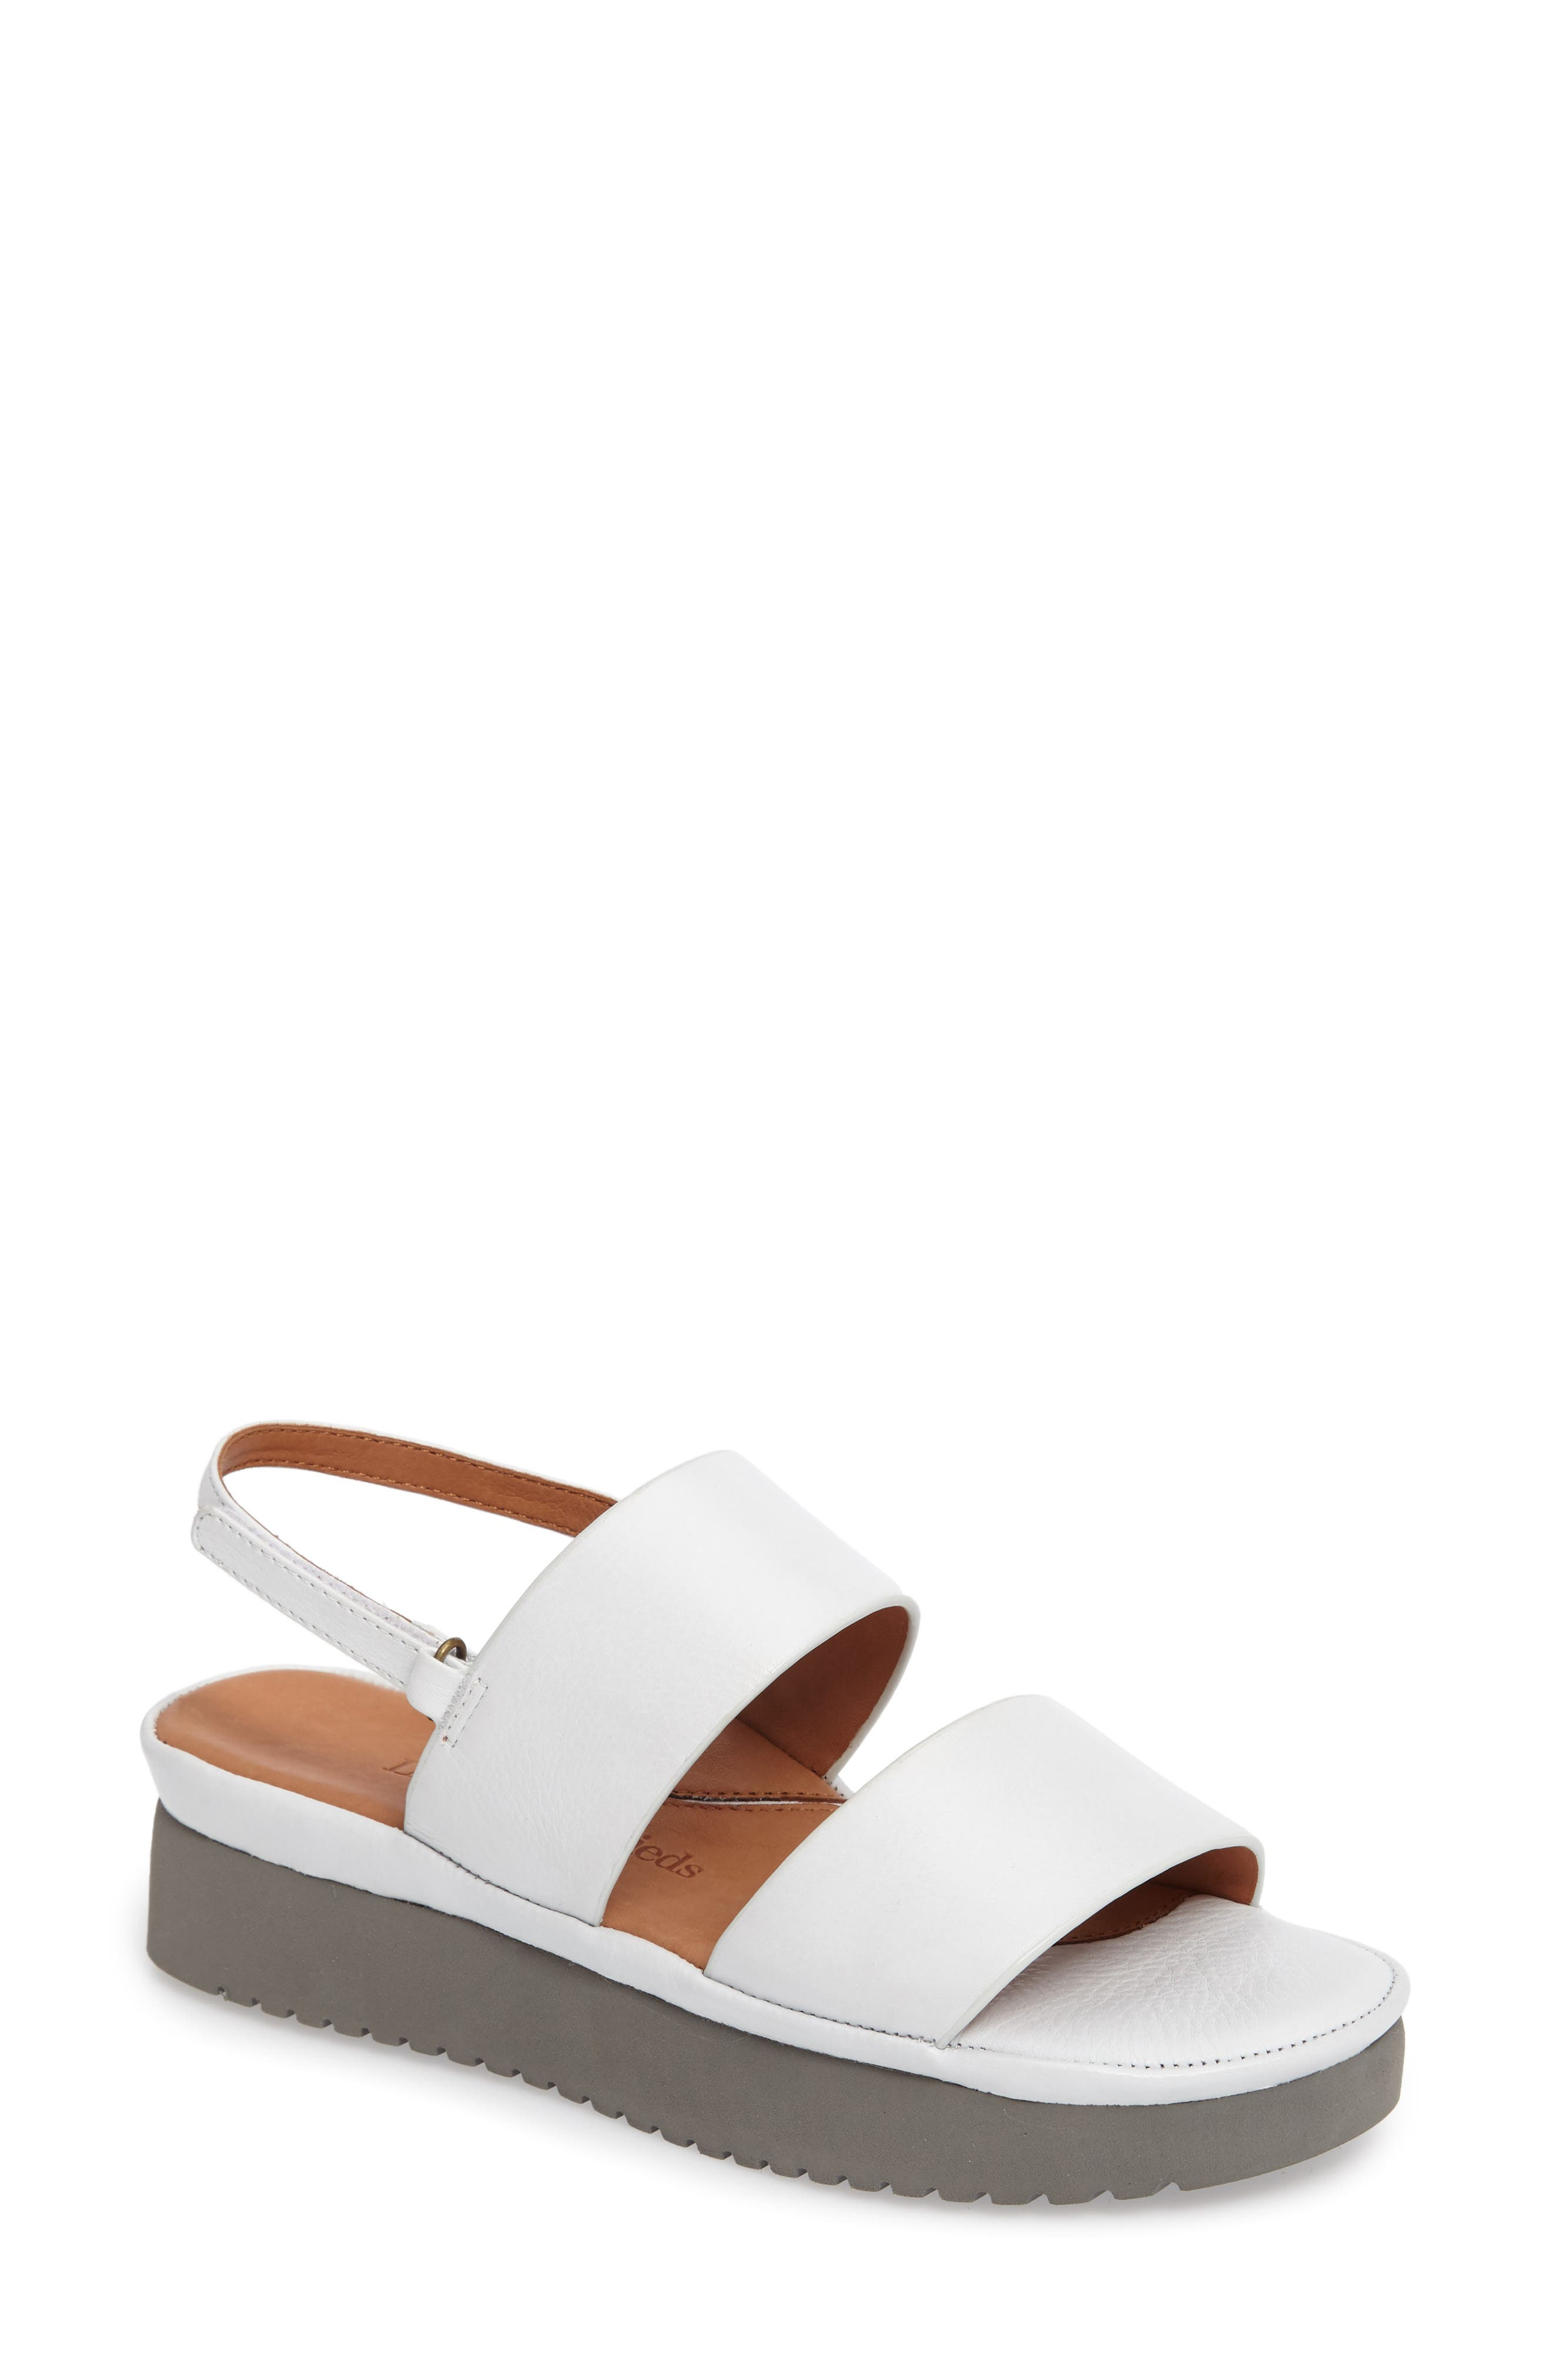 Abruzzo Slingback Platform Wedge Sandal,                         Main,                         color, WHITE LEATHER